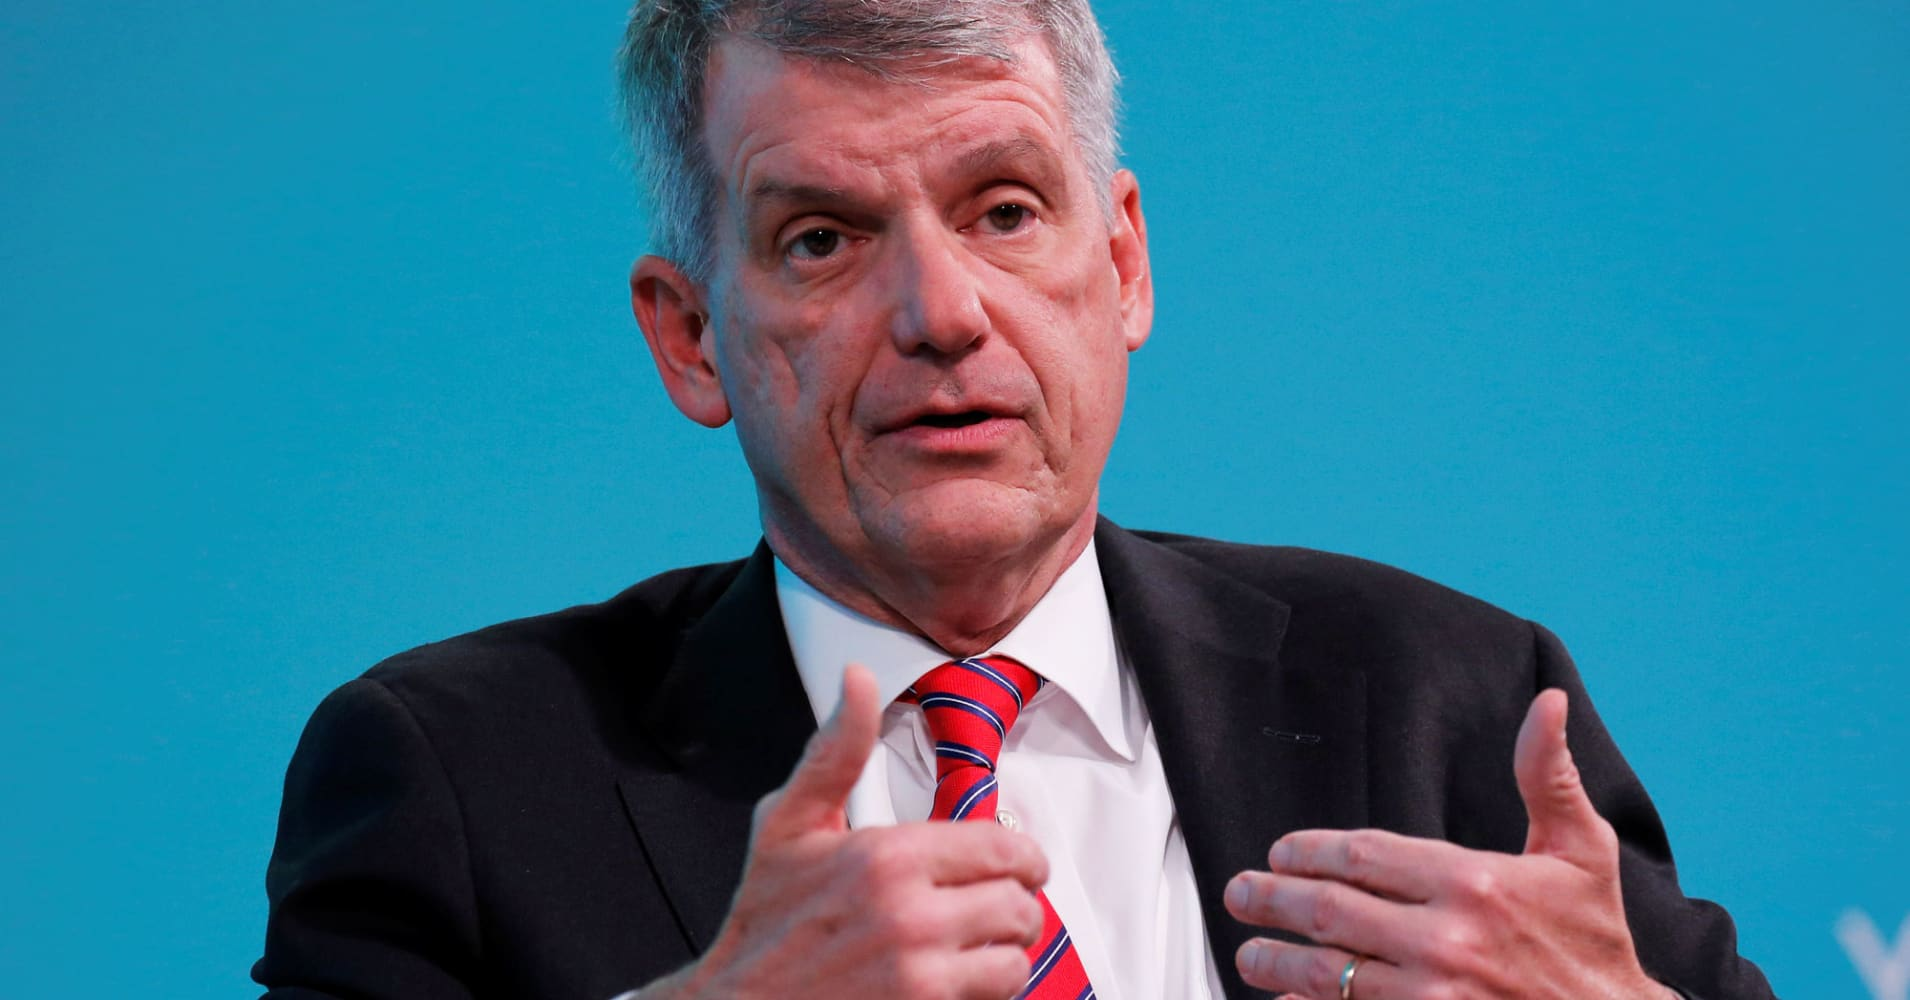 Wells Fargo CEO Tim Sloan is retiring, and shares jump